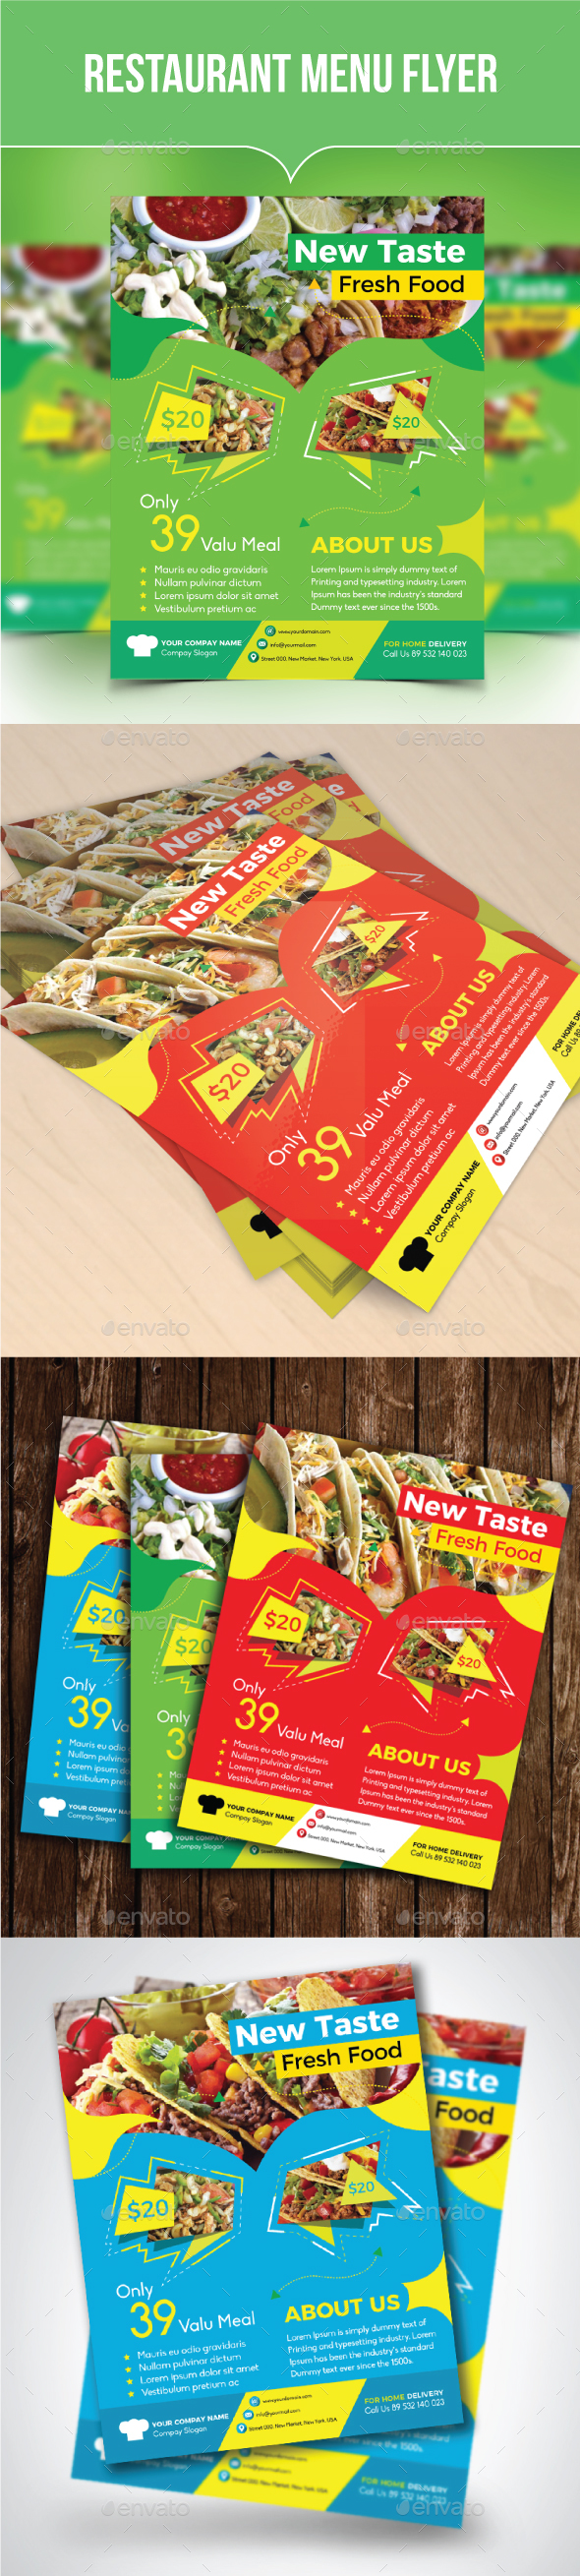 Restaurant Menu Flyer - Restaurant Flyers